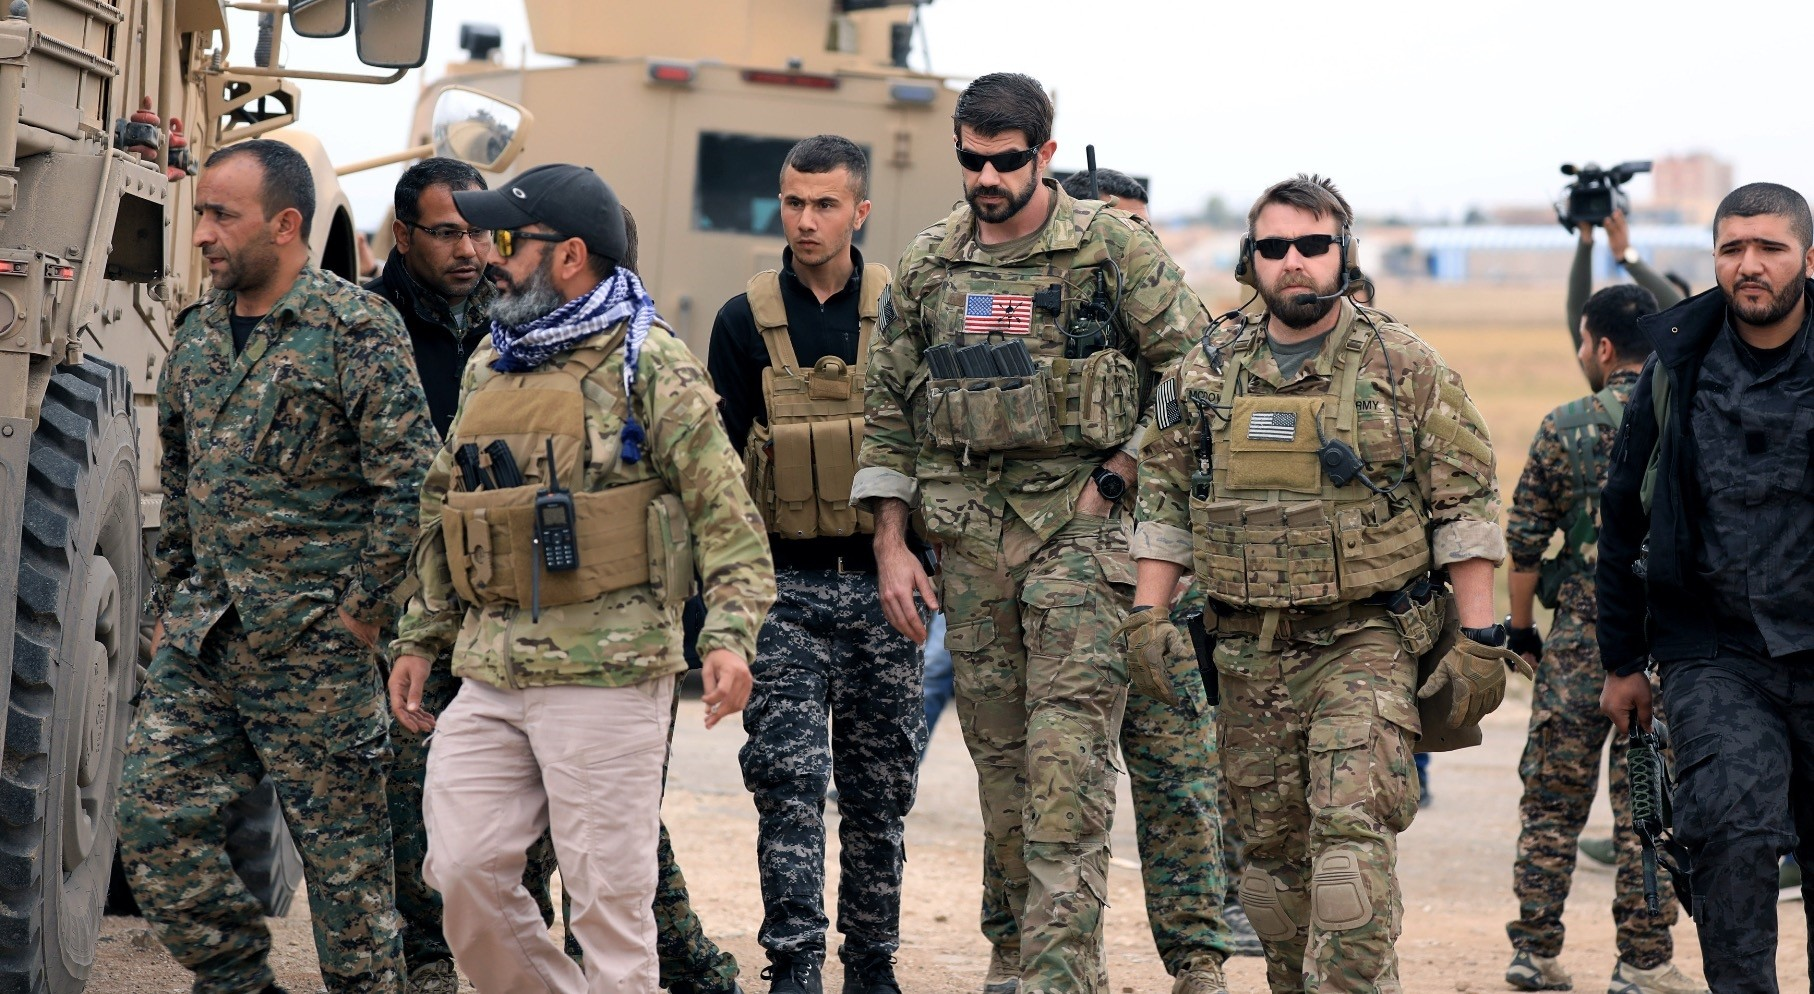 YPG militants and U.S. troops during a patrol near the Turkish border in Hasakah, Nov. 4.